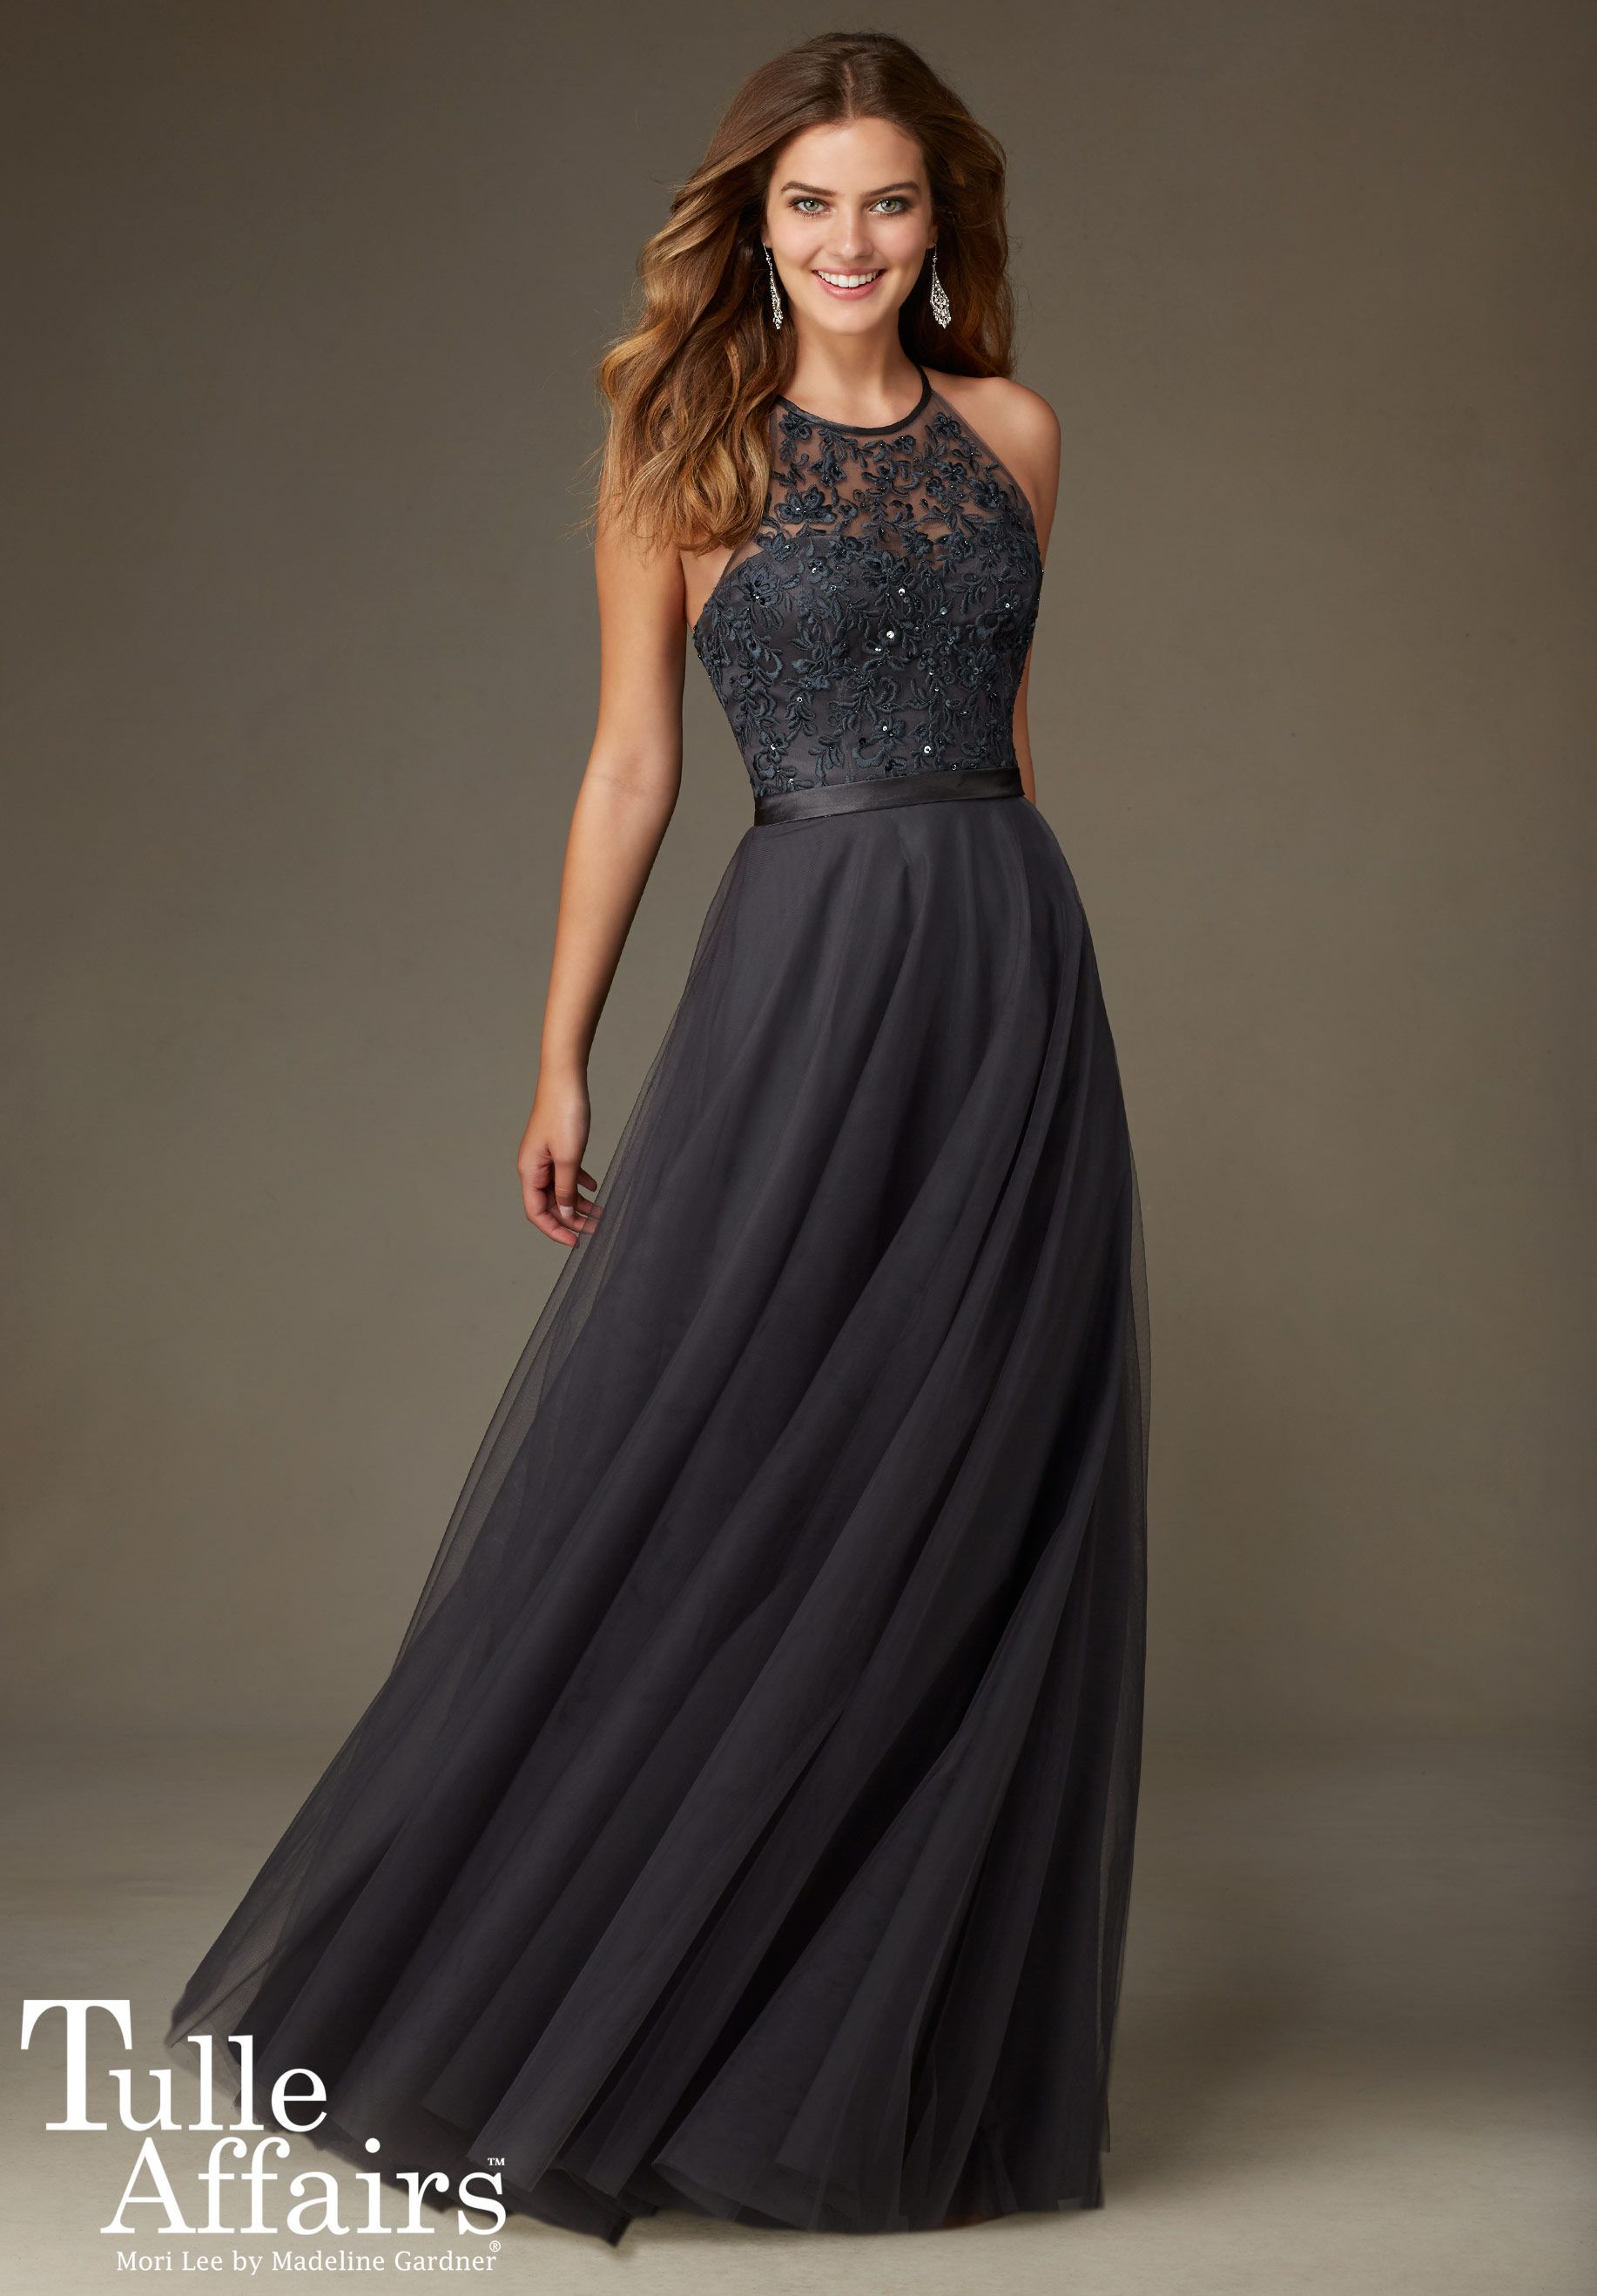 Bridesmaids Dresses - Tulle Affairs Tulle with Embroidery and Beading with  Satin Waistband Available in all Mori Lee Tulle Bridesmaids colors. 7982e729651c